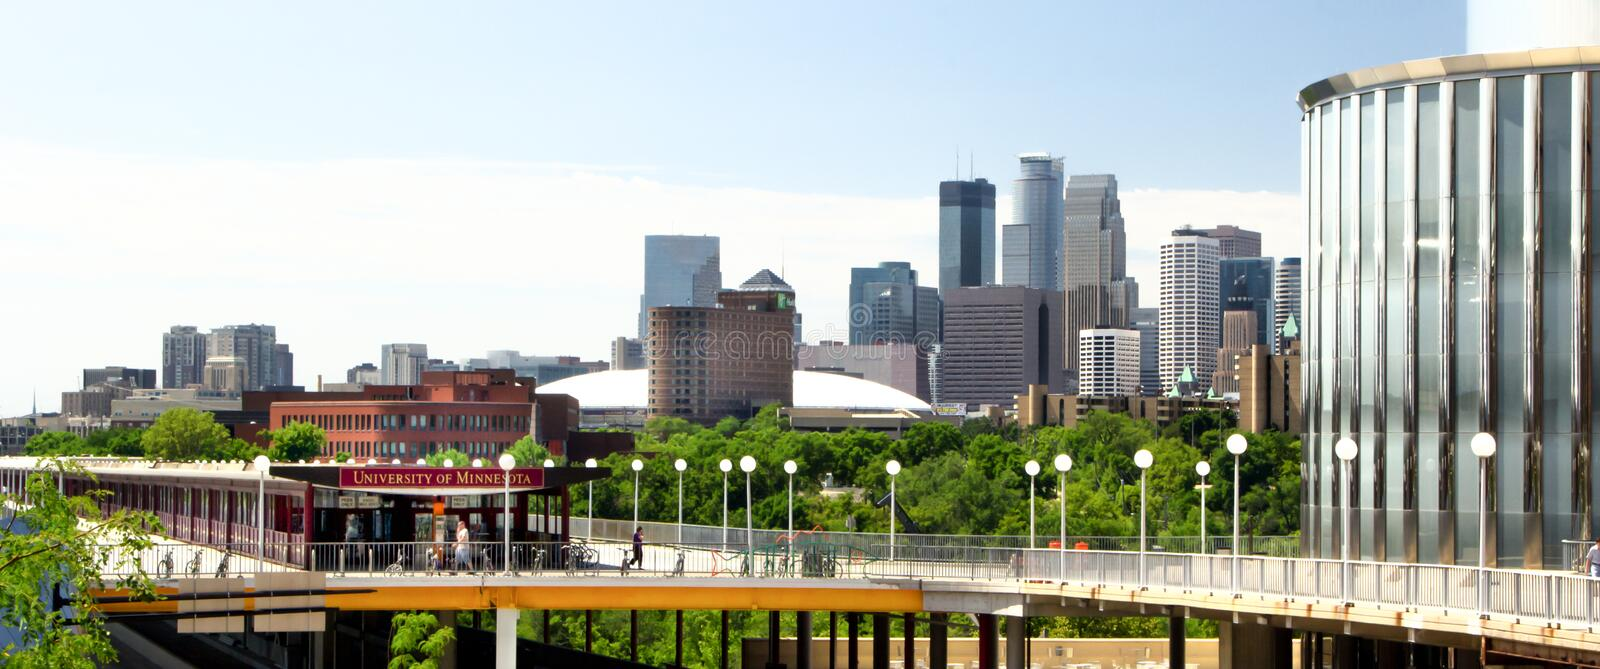 Downtown Minneapolis from the Campus of the University of Minnesota royalty free stock photography